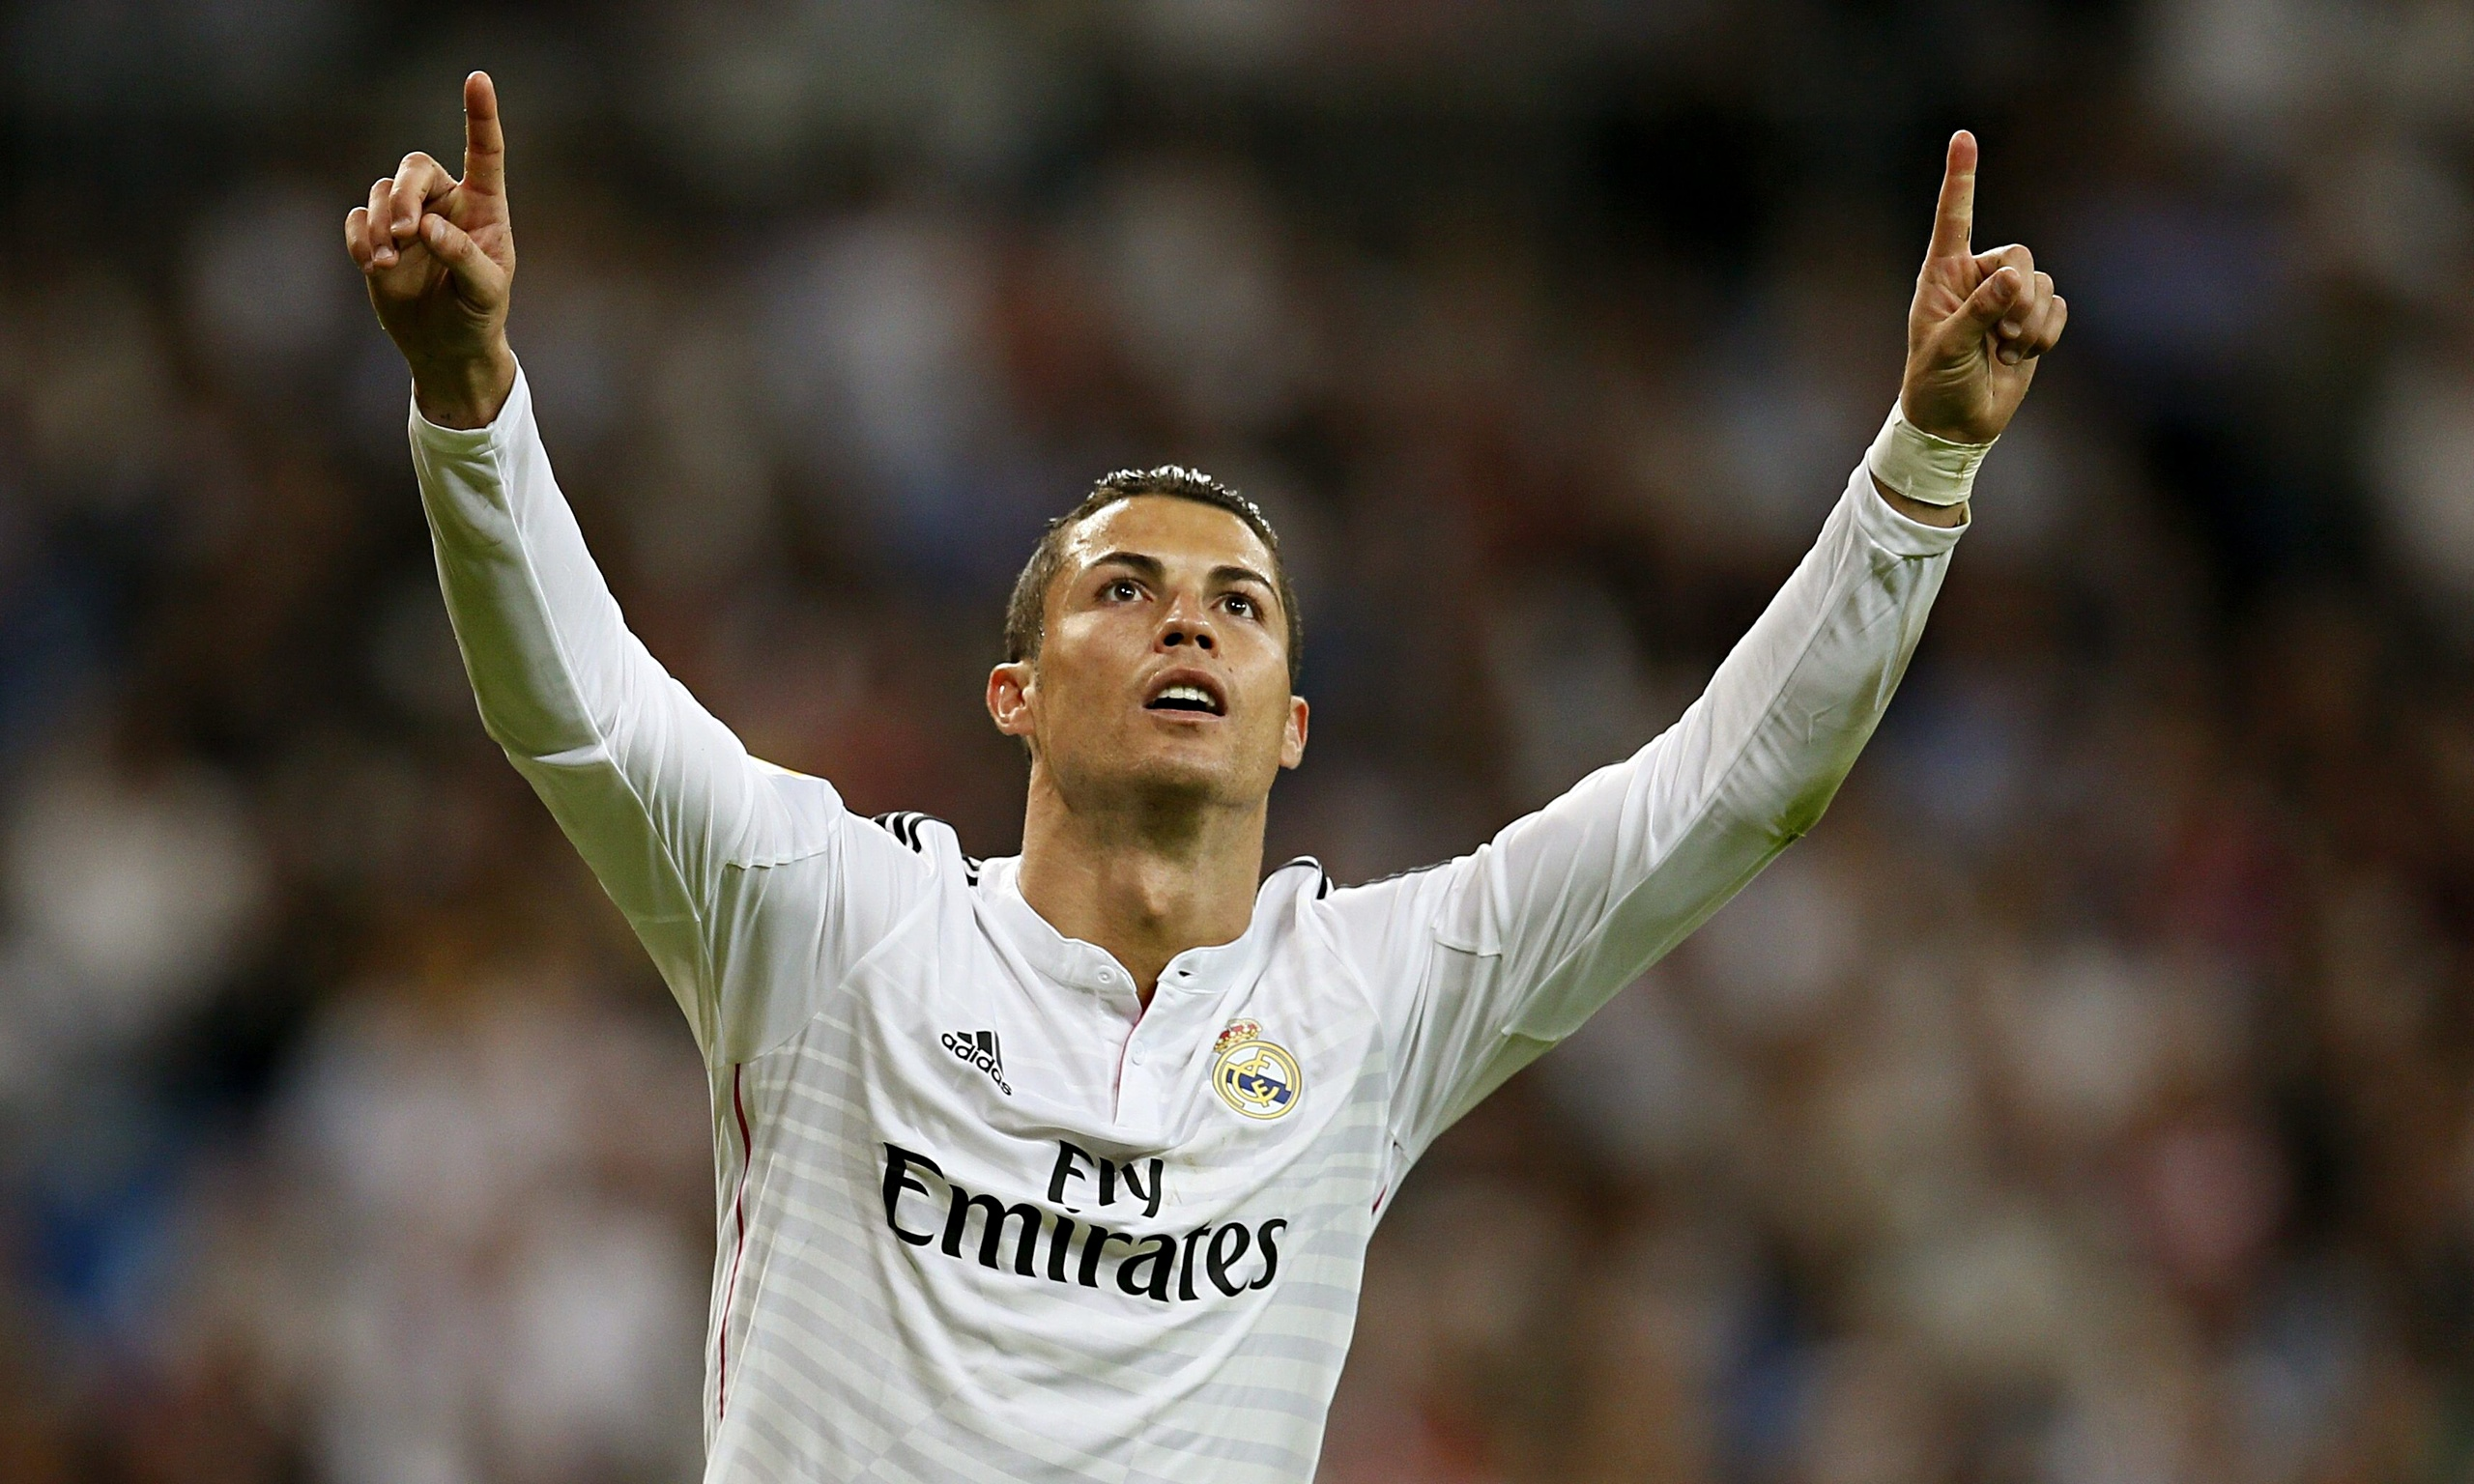 AMAZING NEW MOVIE ABOUT 'CRISTIANO RONALDO'S' RISE TO SUCCESS COMING TO CINEMA'S NEXT MONTH!